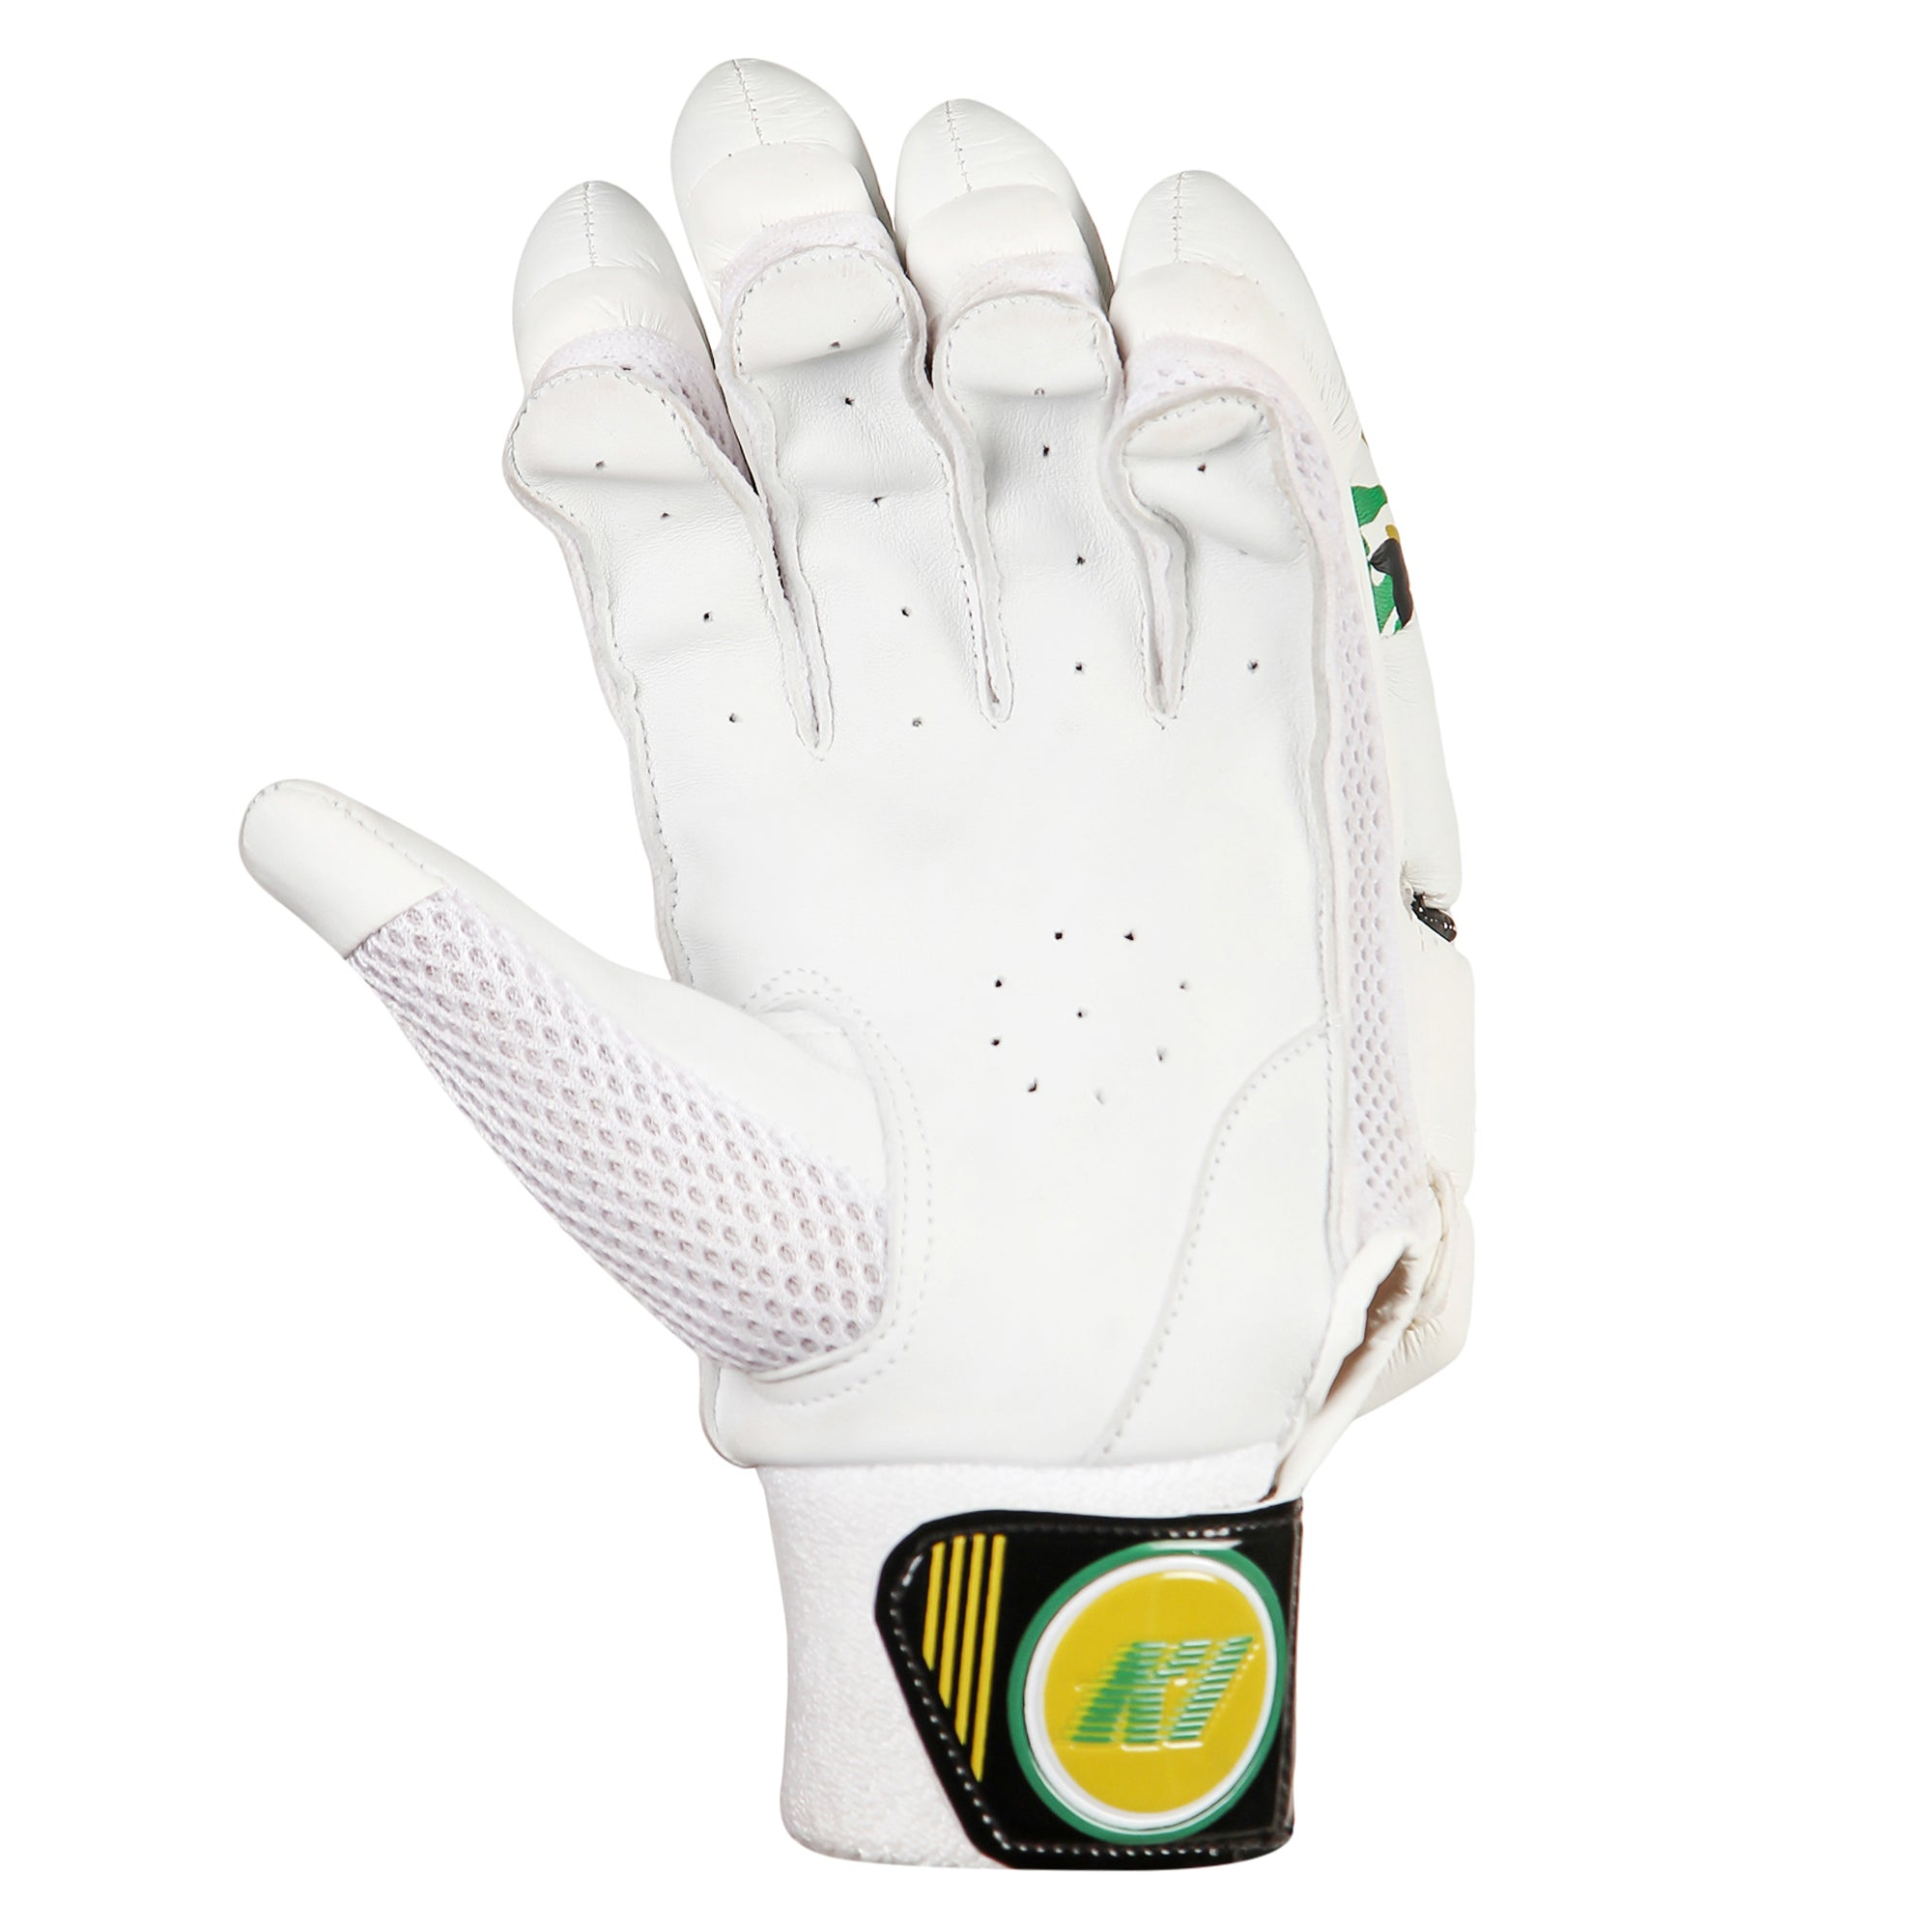 RANGER STORM- BATTING GLOVES